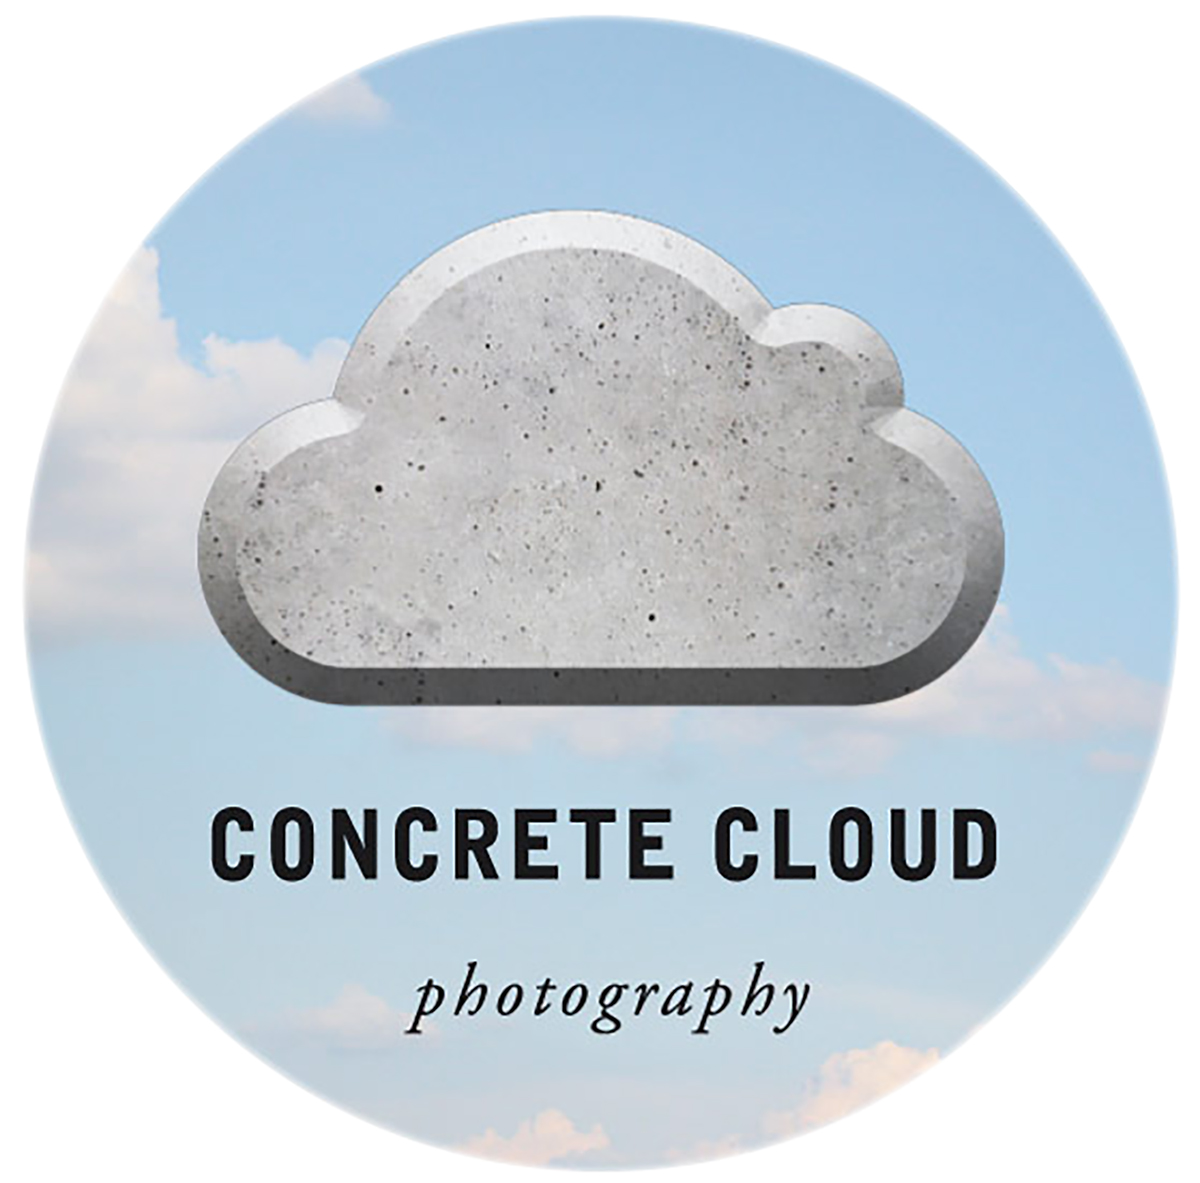 Concrete Cloud Photography